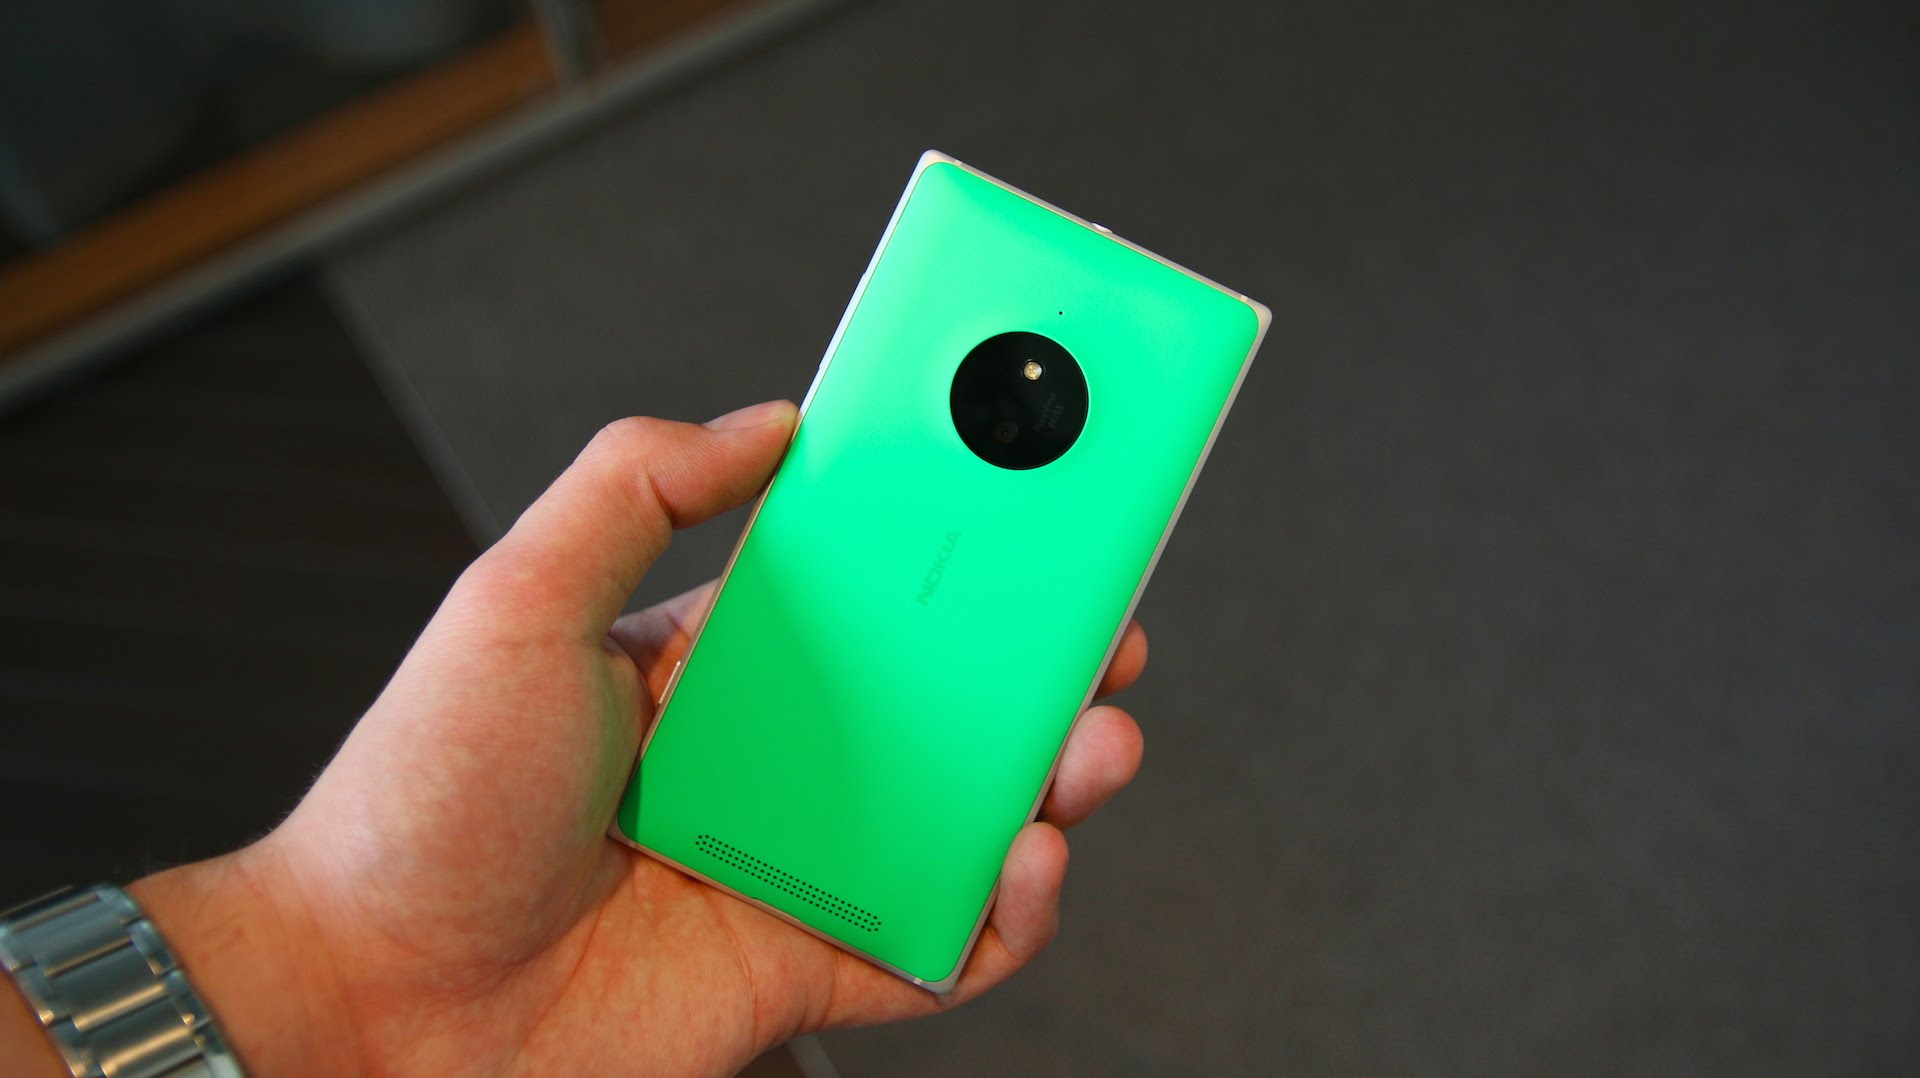 Carphone Warehouse now accepting pre-orders for the Nokia Lumia 830